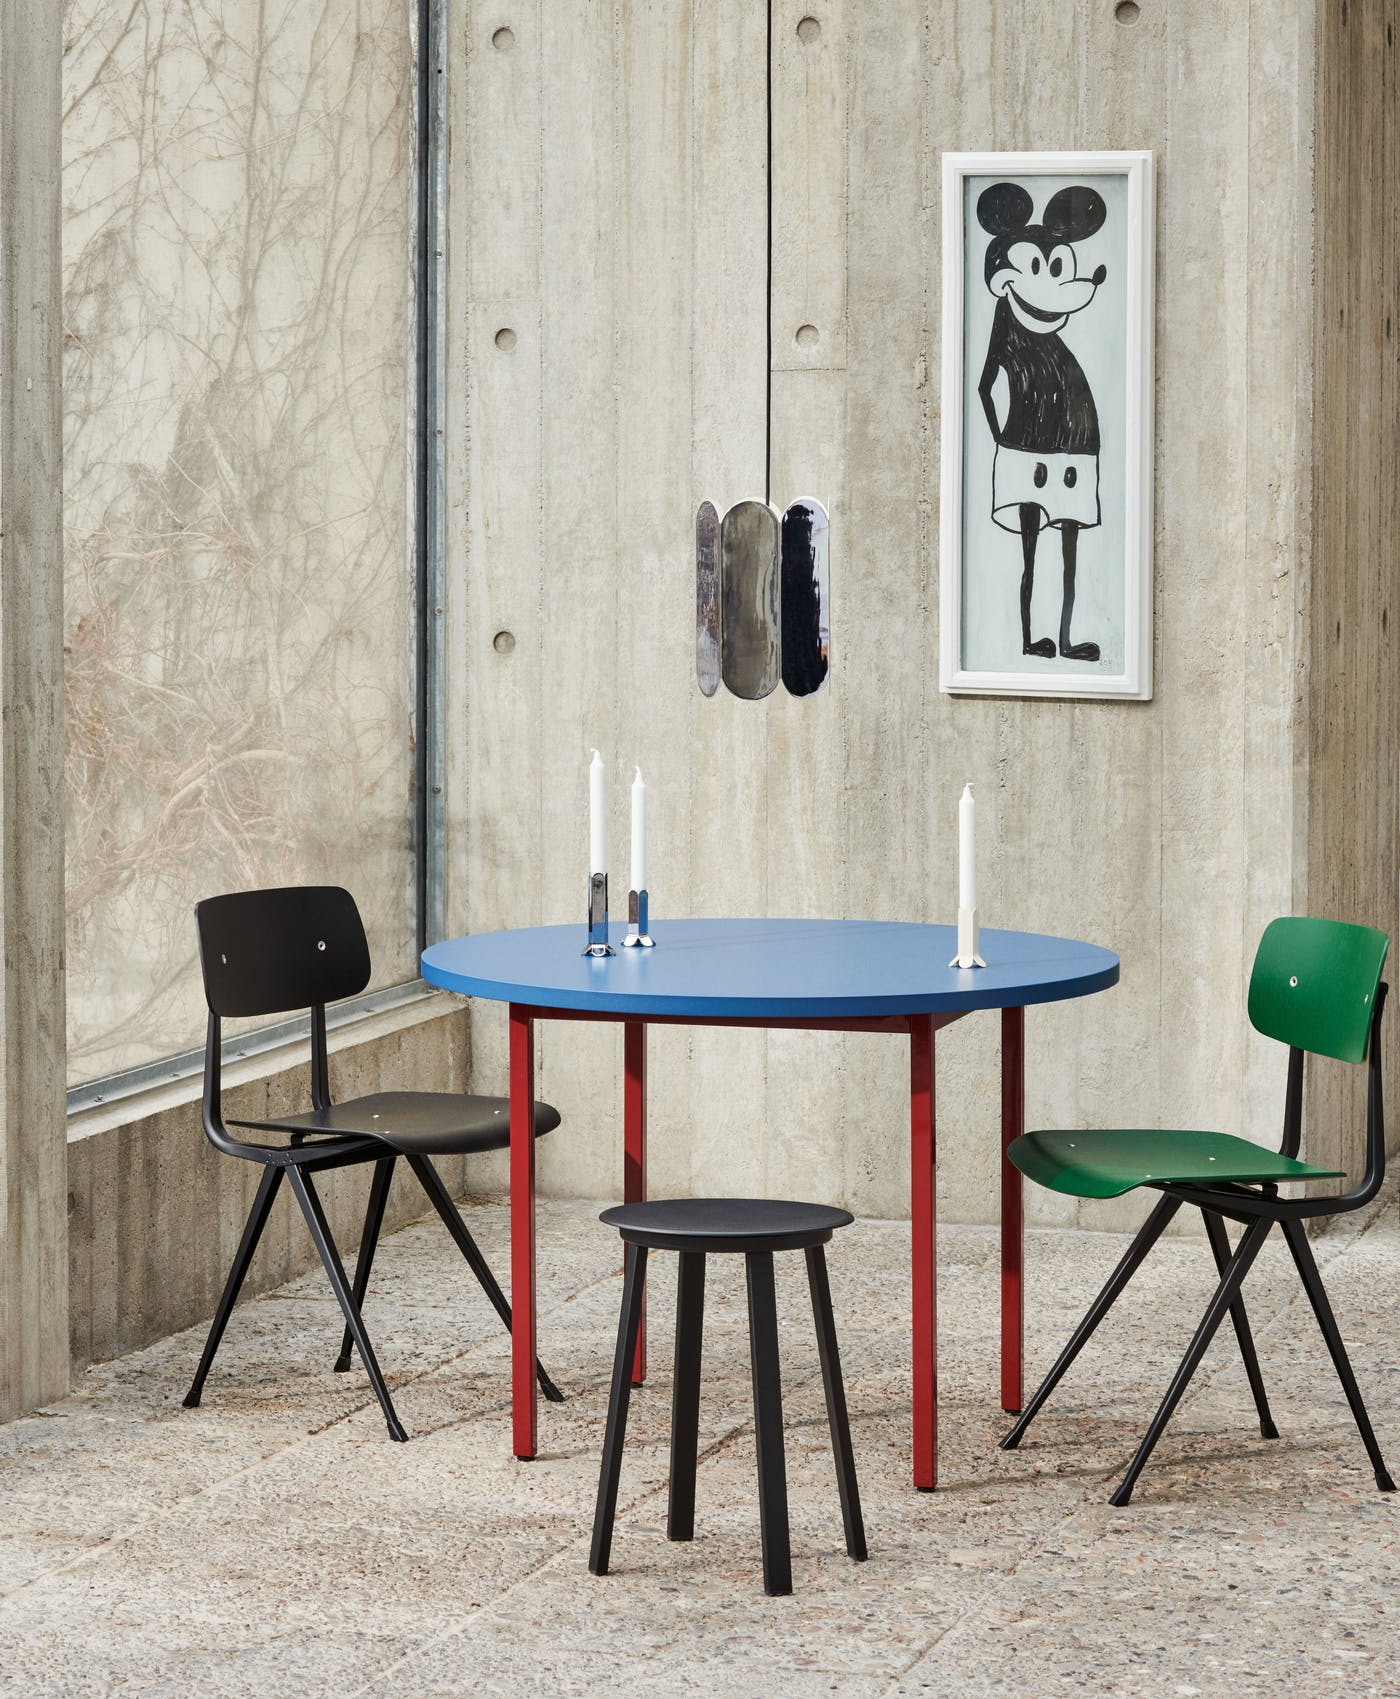 Two Colour dia105 blue wb lacquer valchromat tabletop maroon red powder coated steel Arcs Shade mirror 1